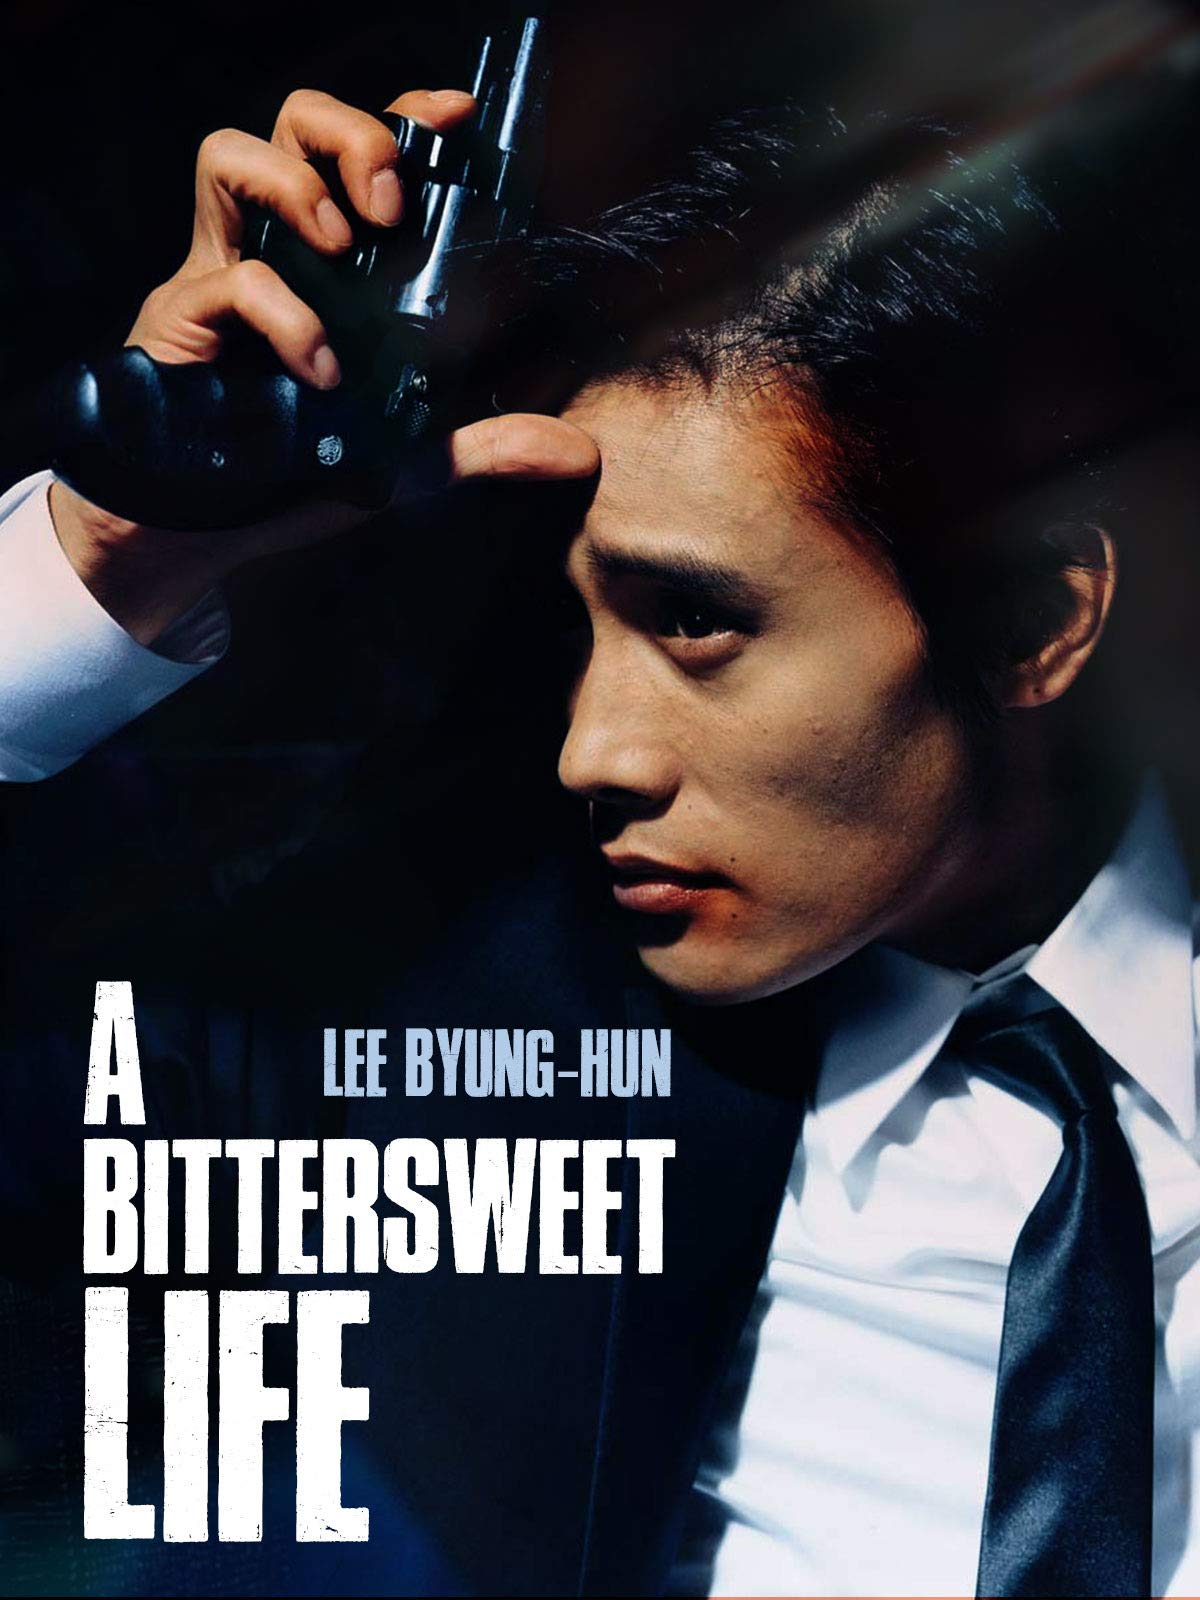 Watch A Bittersweet Life | Prime Video